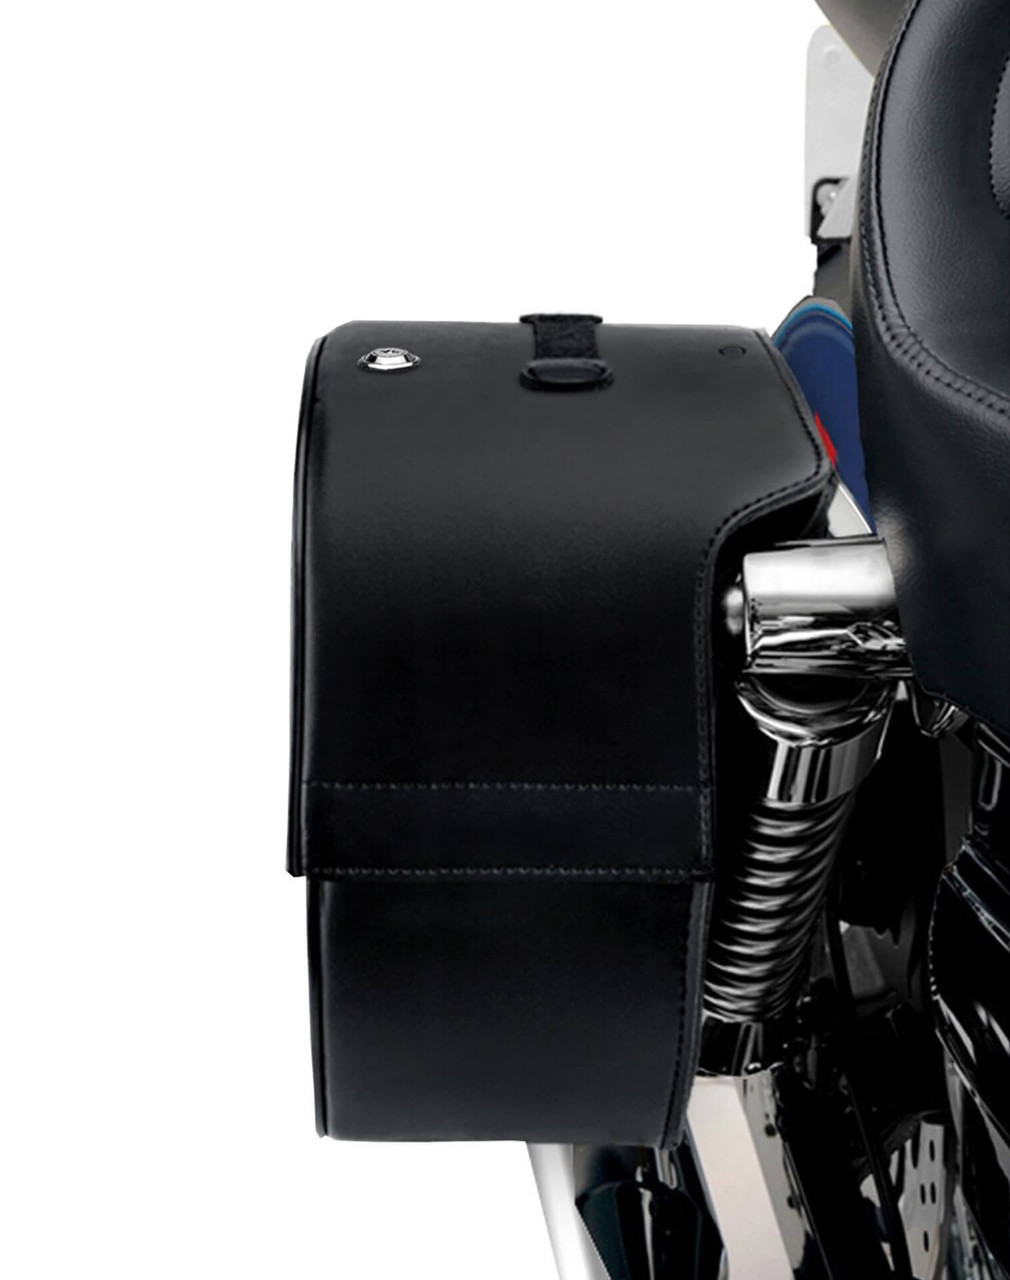 Viking Shock Cutout Large Studded Motorcycle Saddlebags For Harley Sportster 1200 Nightster XL1200N Shock Cutout View